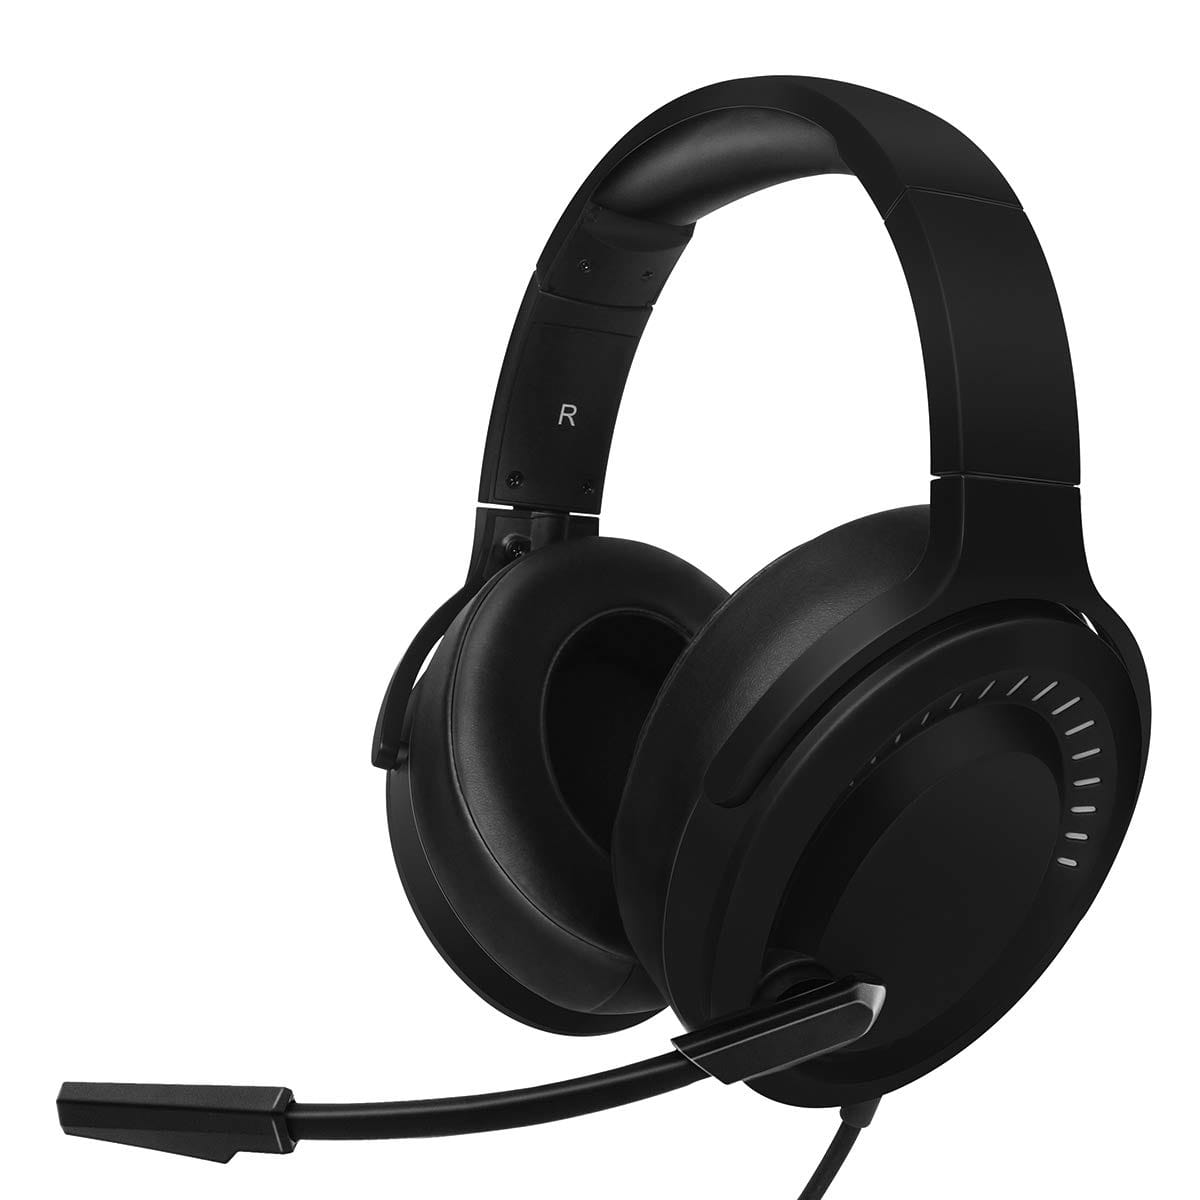 NUBWO Gaming Headset for PS4, PC, Xbox one (3.5mm Plug) 15.99$ $15.99